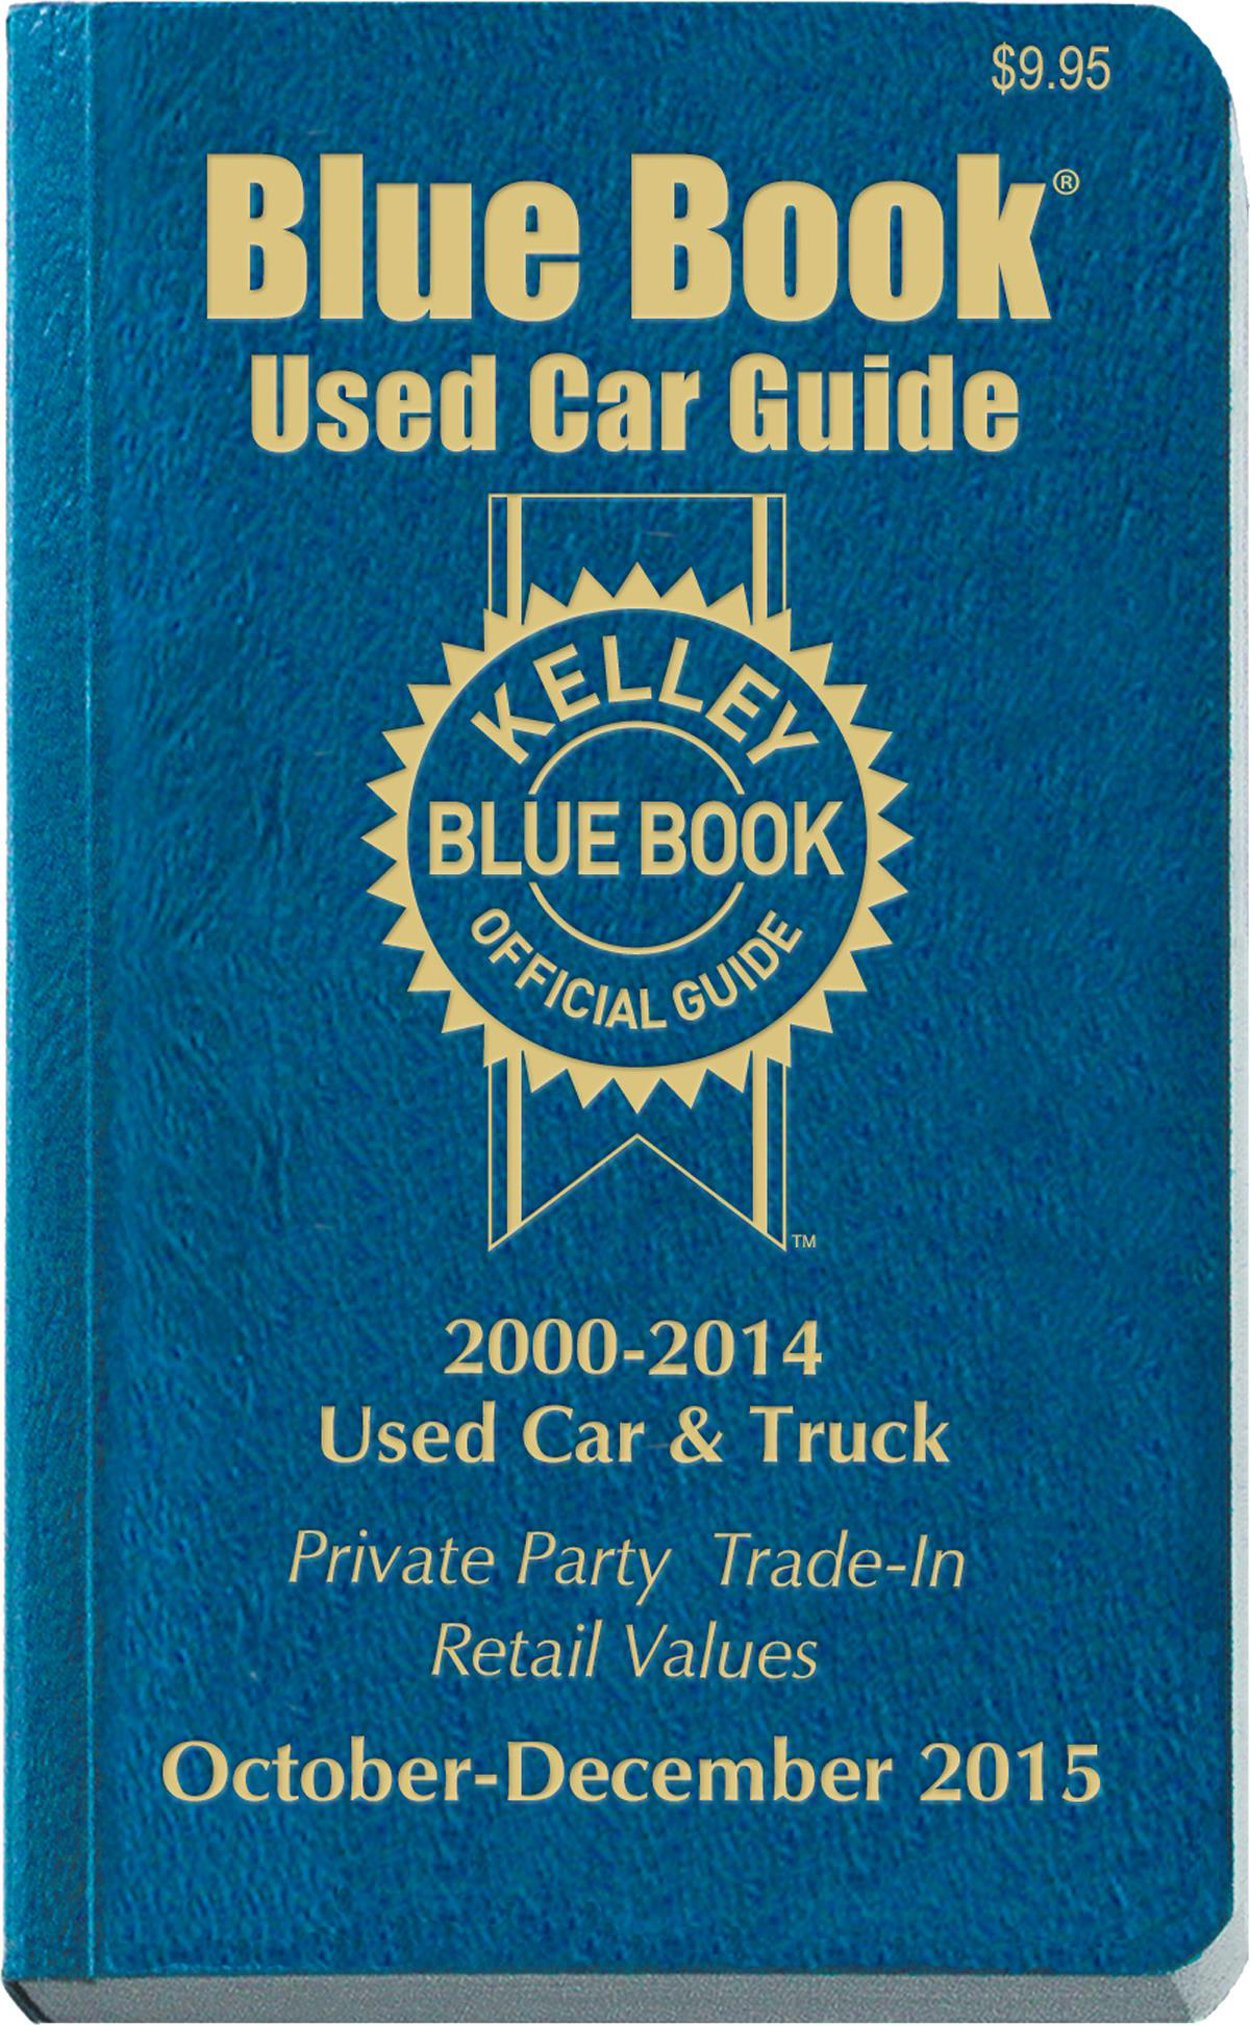 kelley blue book used car guide consumer edition october december 2015 kelley blue book books